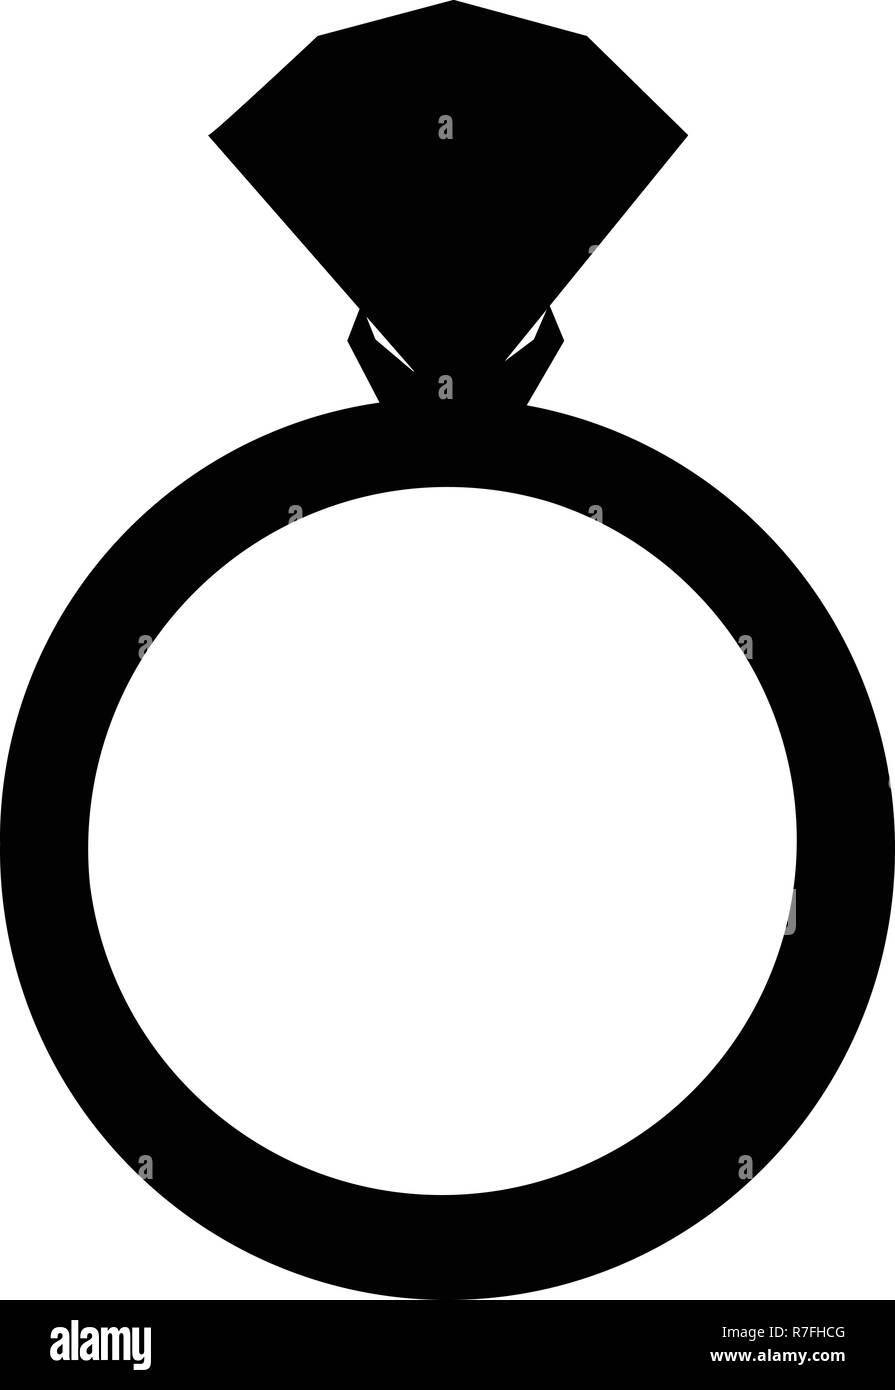 Vector black silhouette of engagement ring with diamond isolated on white background. Wedding or marriage present icon, sign, symbol, clip art isolate - Stock Image